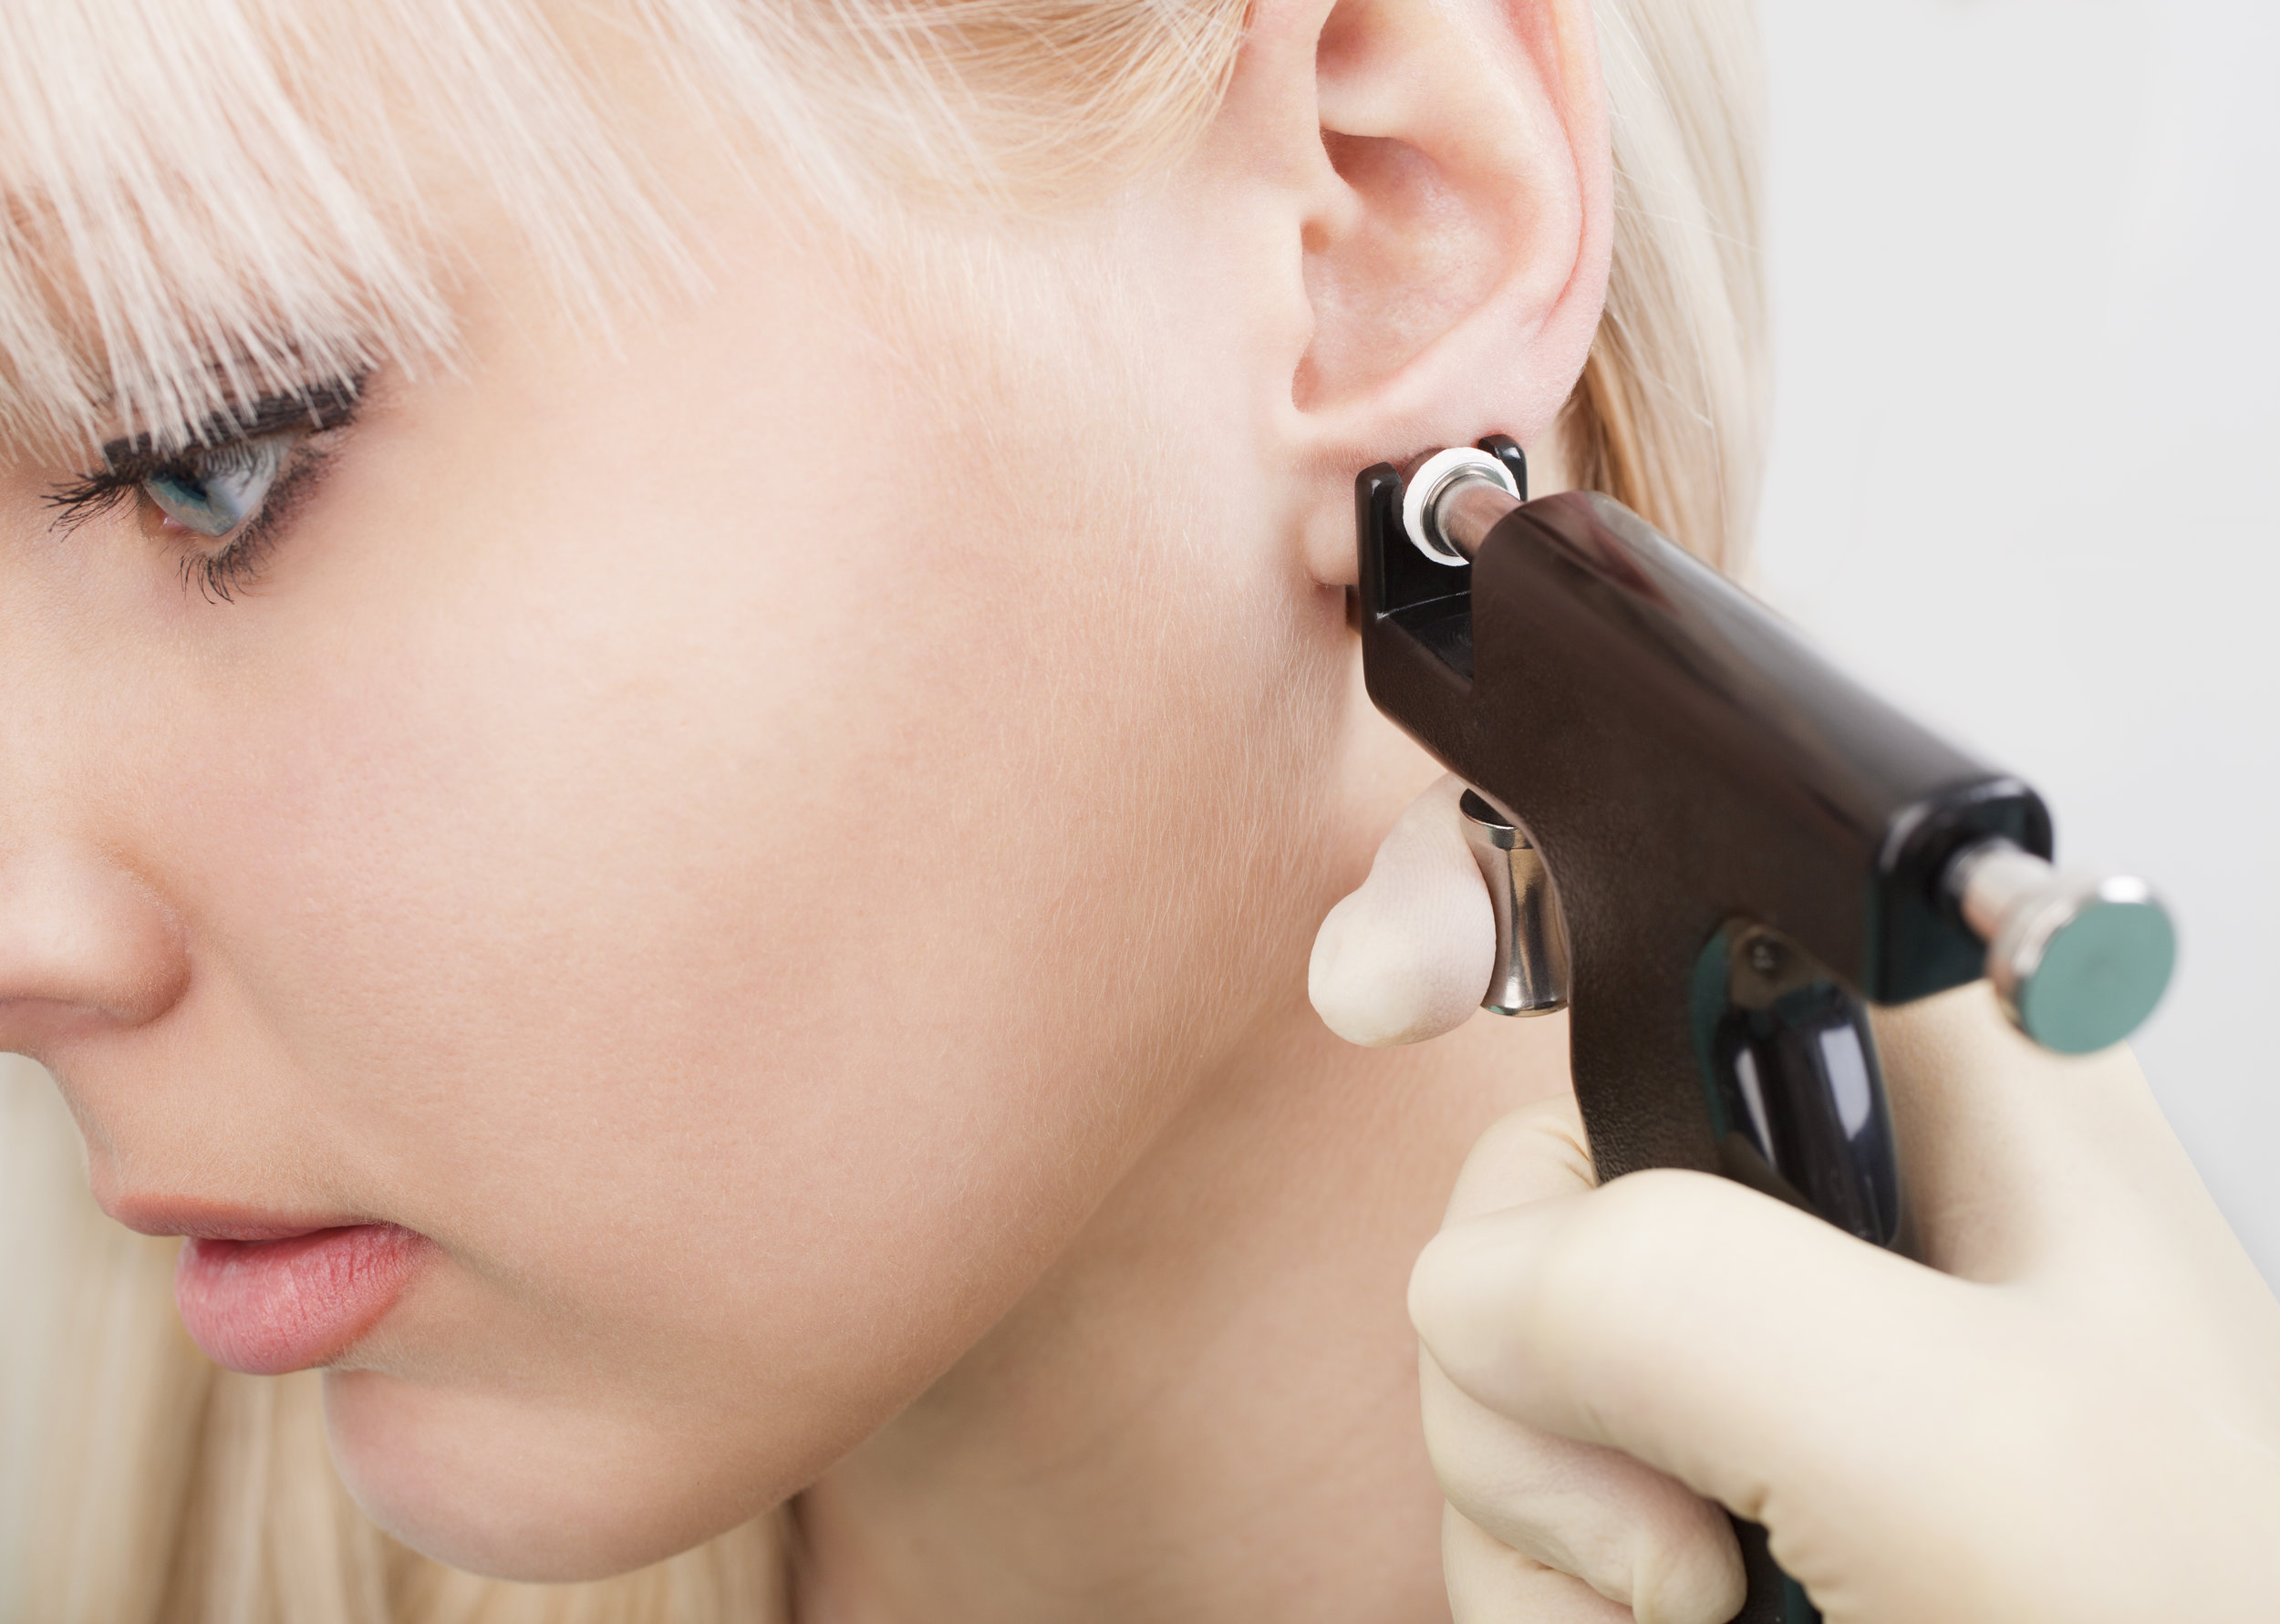 Professional Ear Piercing. Just €18. - Are you looking for professional Ear Piercing? At KOKO TALLAGHT we have a wonderful female team on hand to ensure you feel safe & comfortable during your time with us.Under 16s must have parent/guardian with them for Ear Piercing. ID required.Call us on 01-4139000 to book an appointment